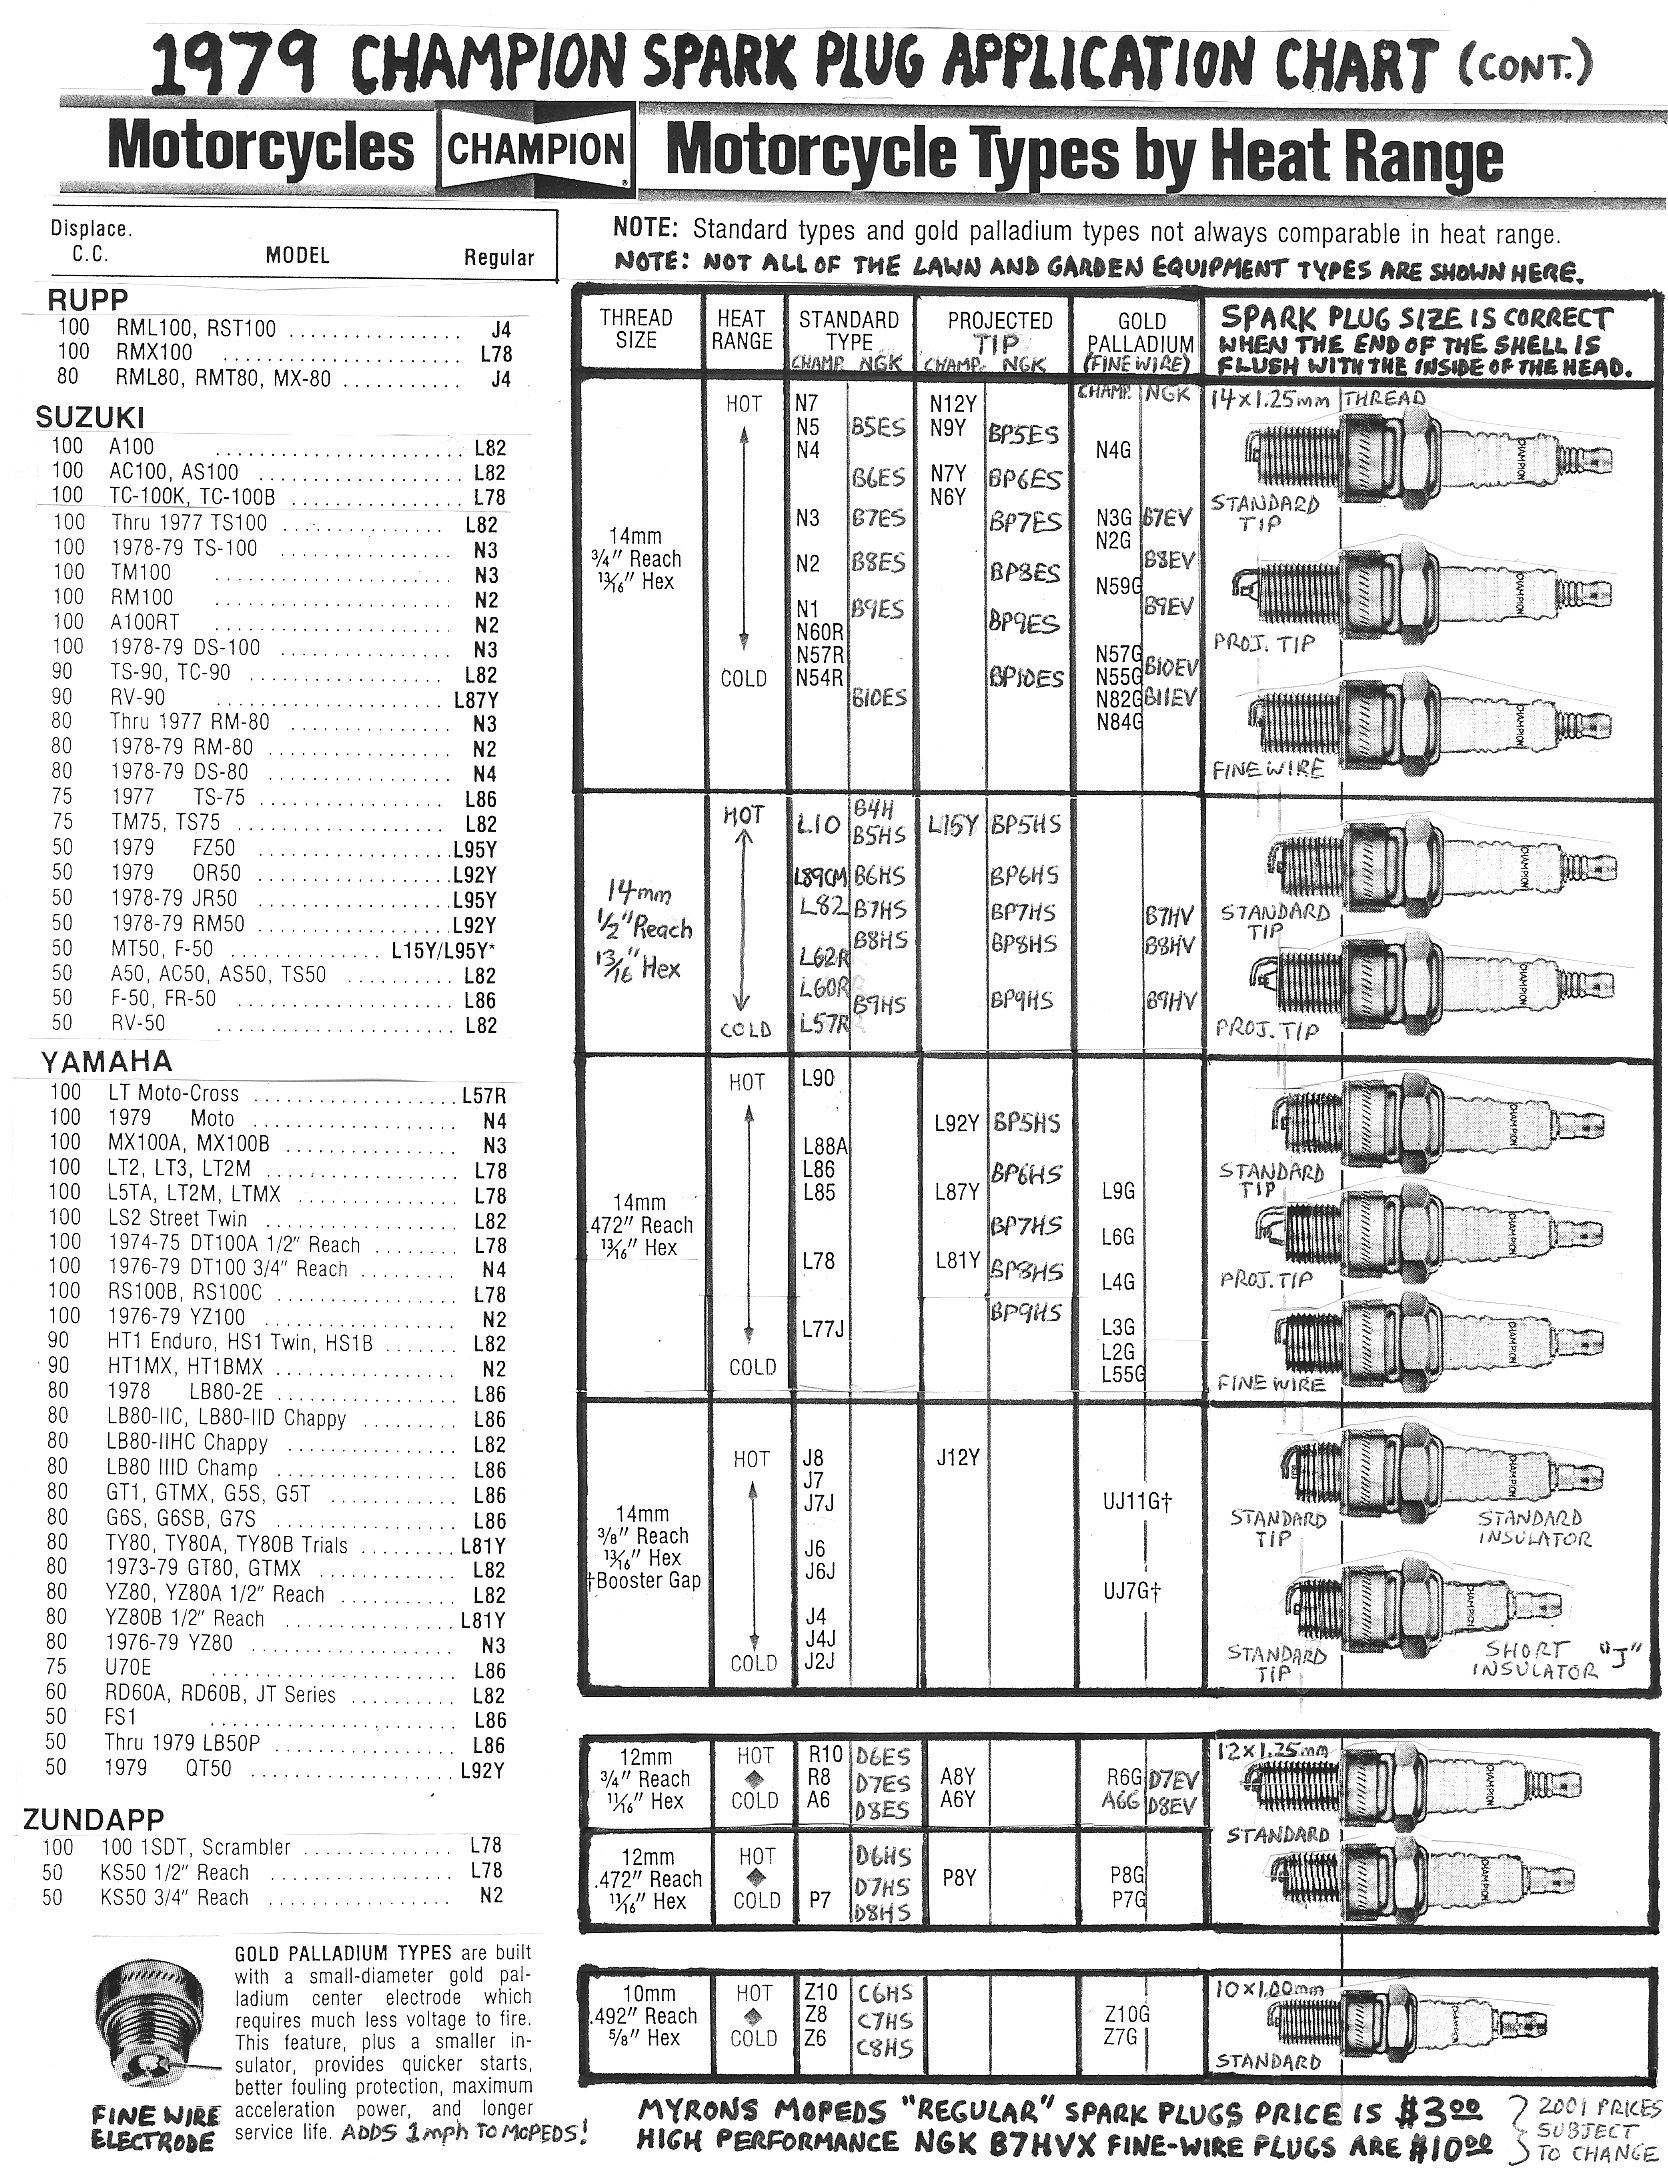 hight resolution of 1979 champion motorcycle spark plug chart page 3